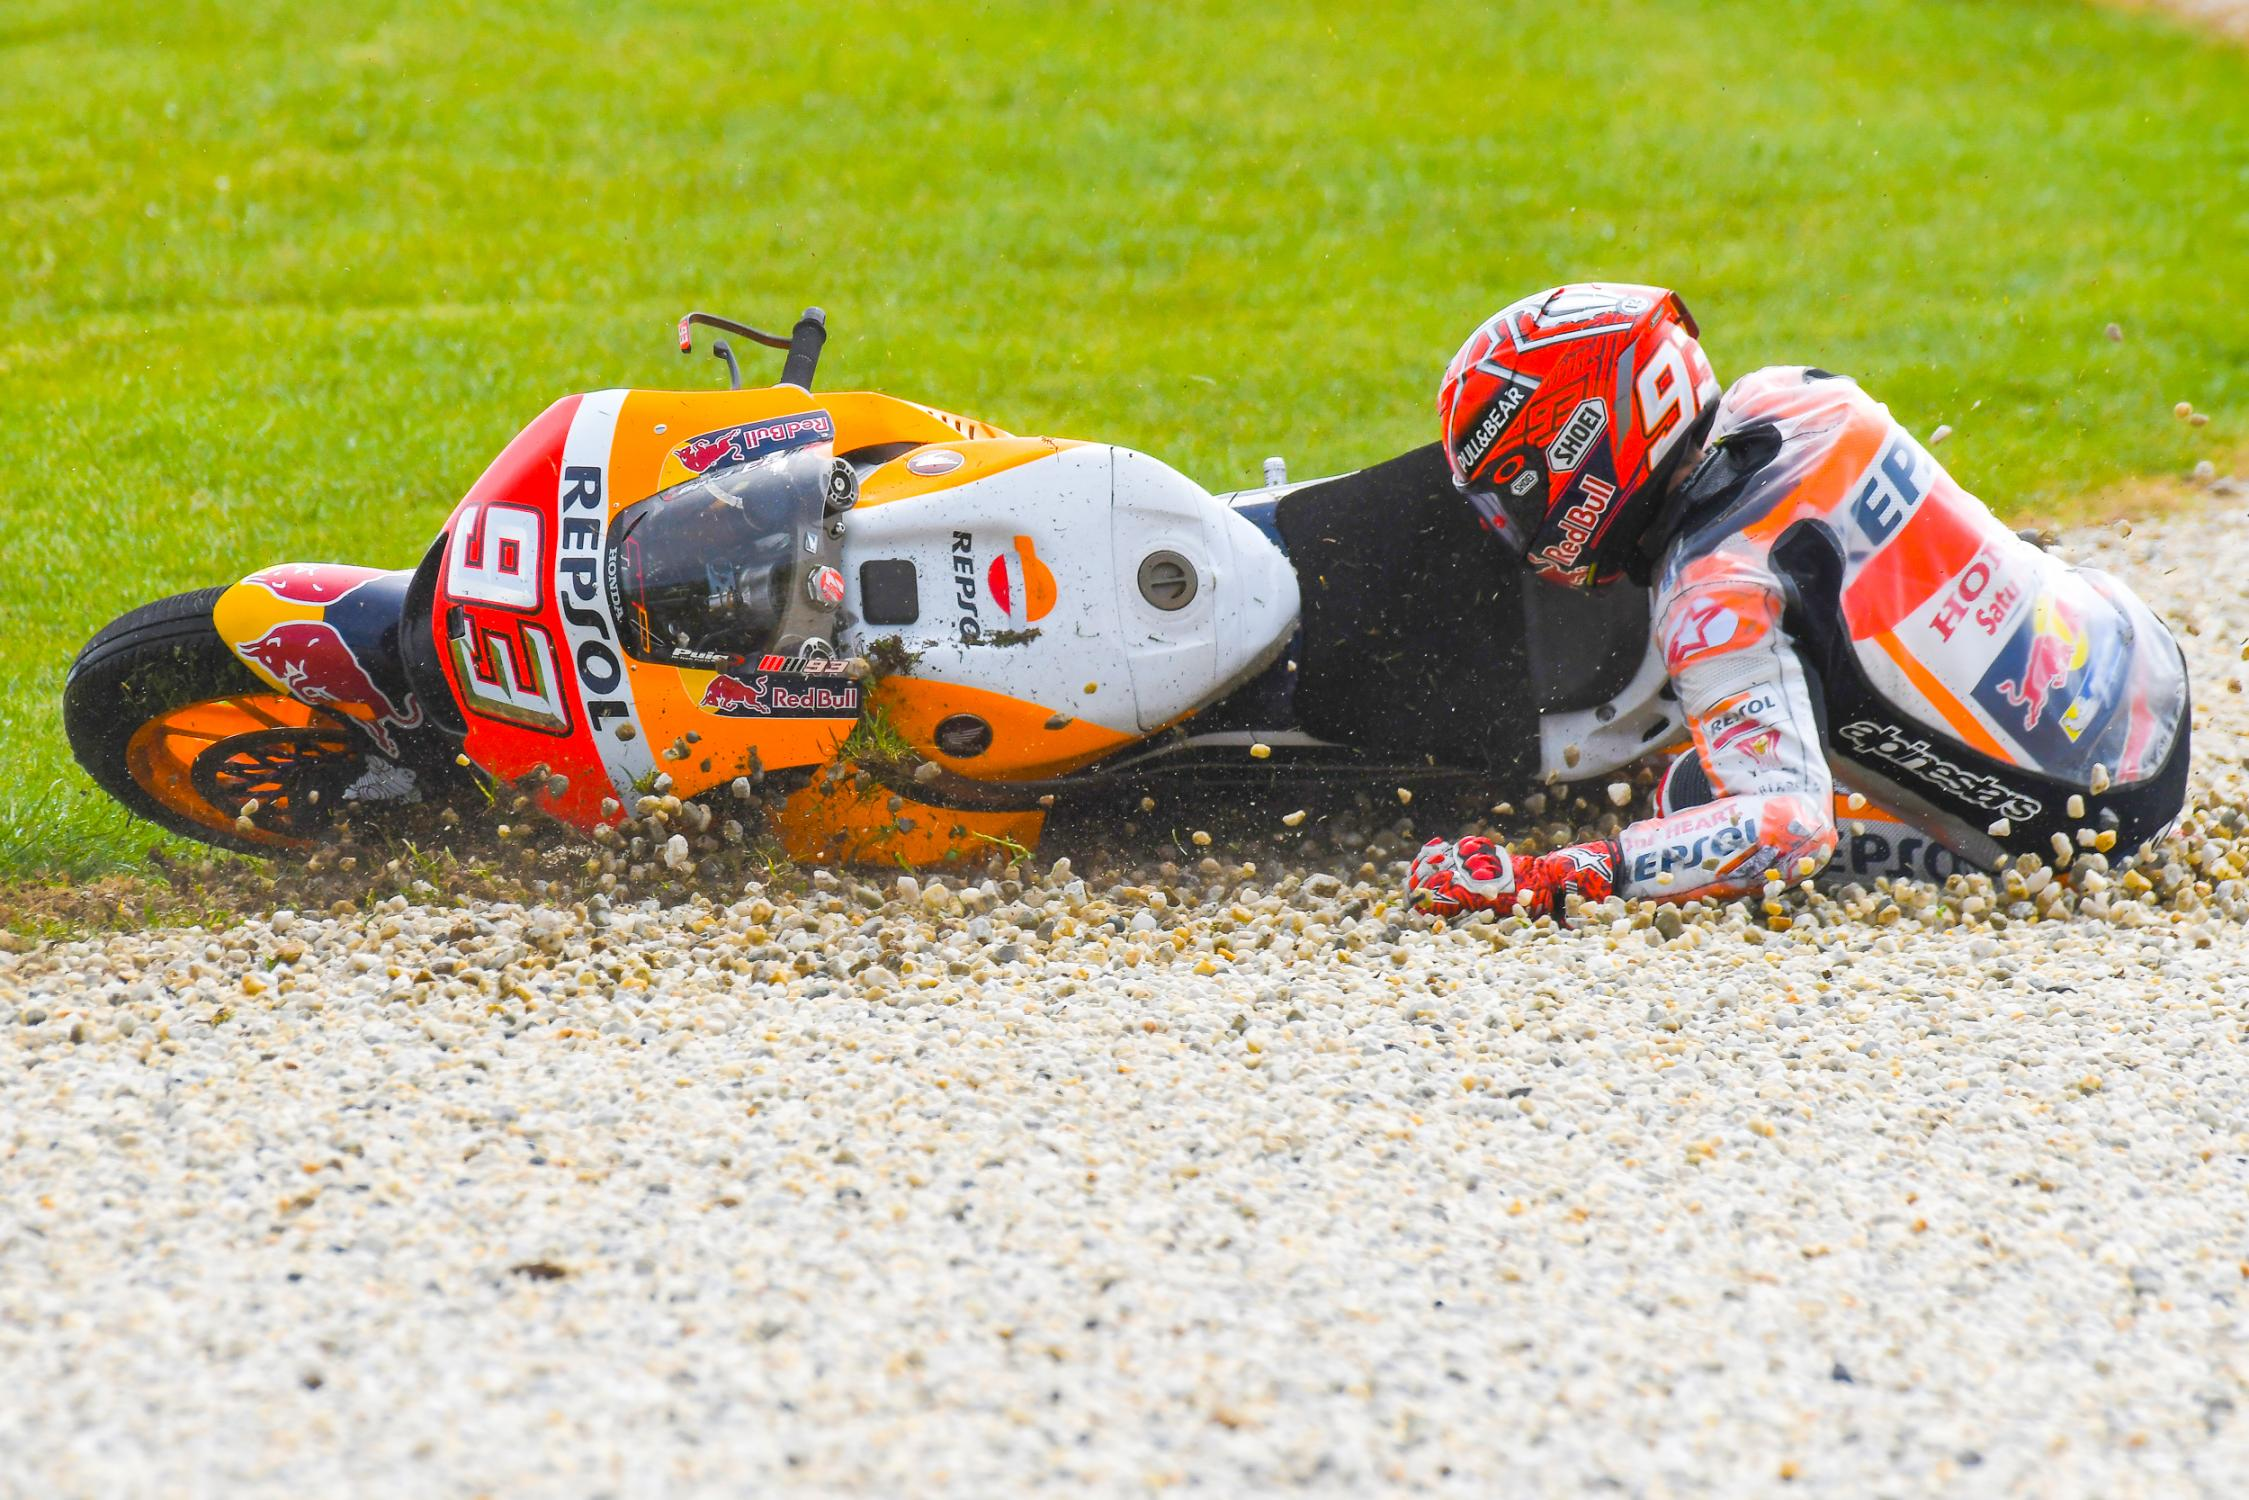 93-marc-marquez-espdsc_5664.gallery_full_top_fullscreen.jpg